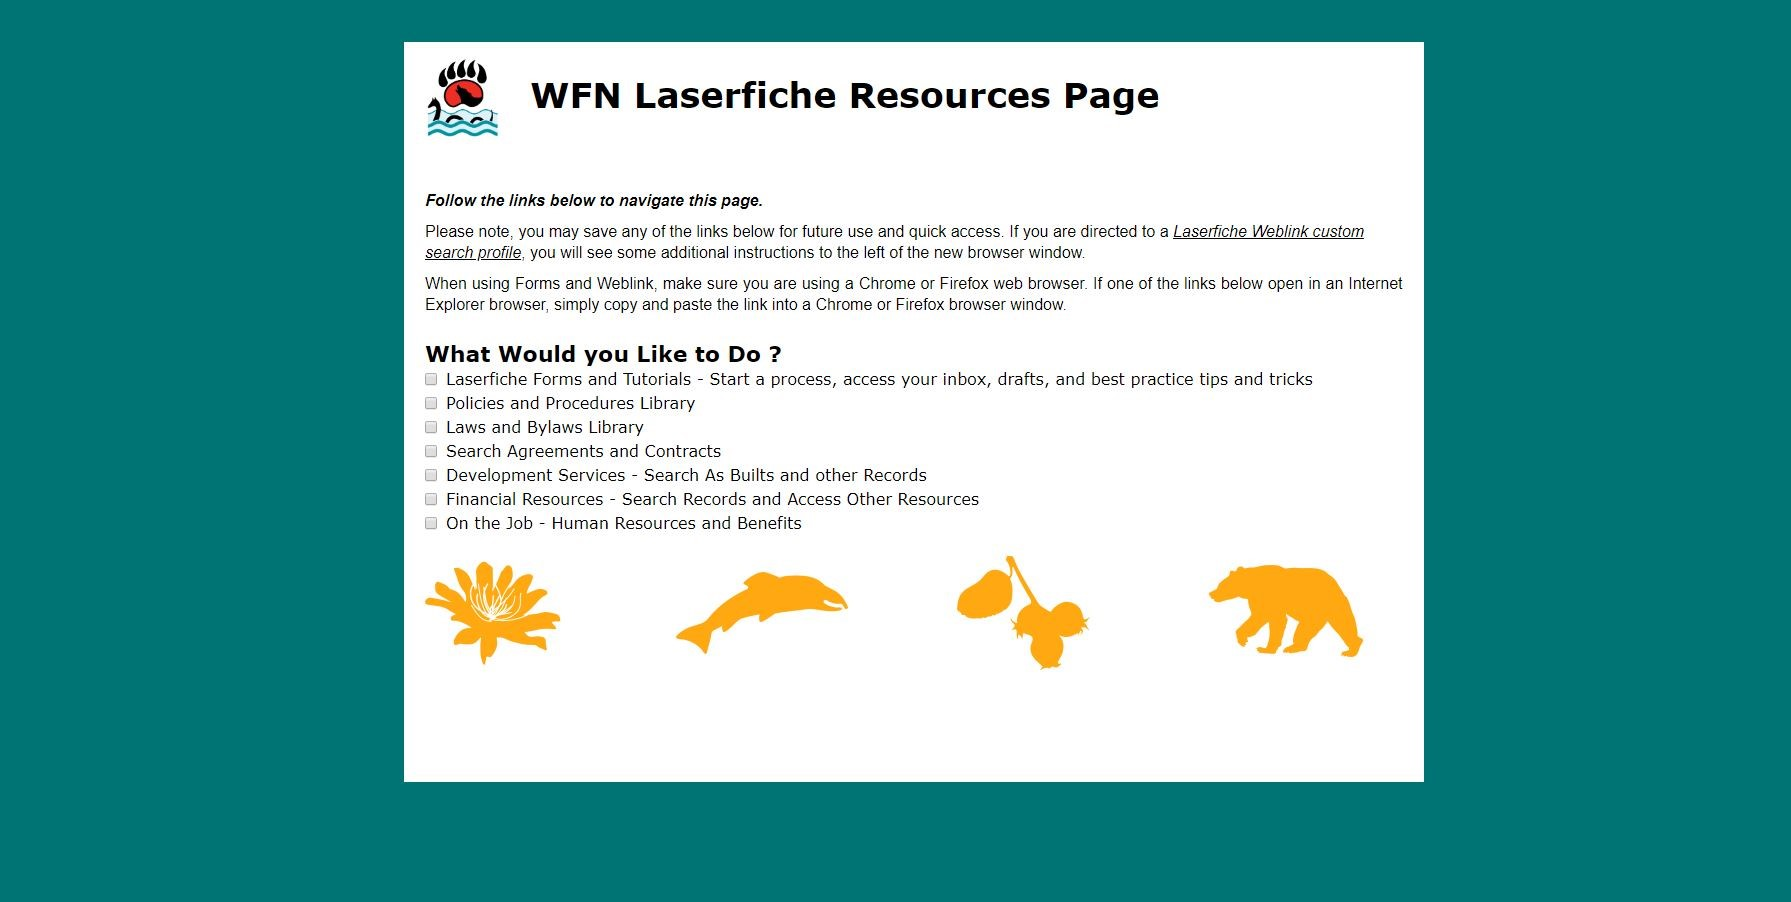 This image shows the first page of the WFN employe portal with various options that users can check